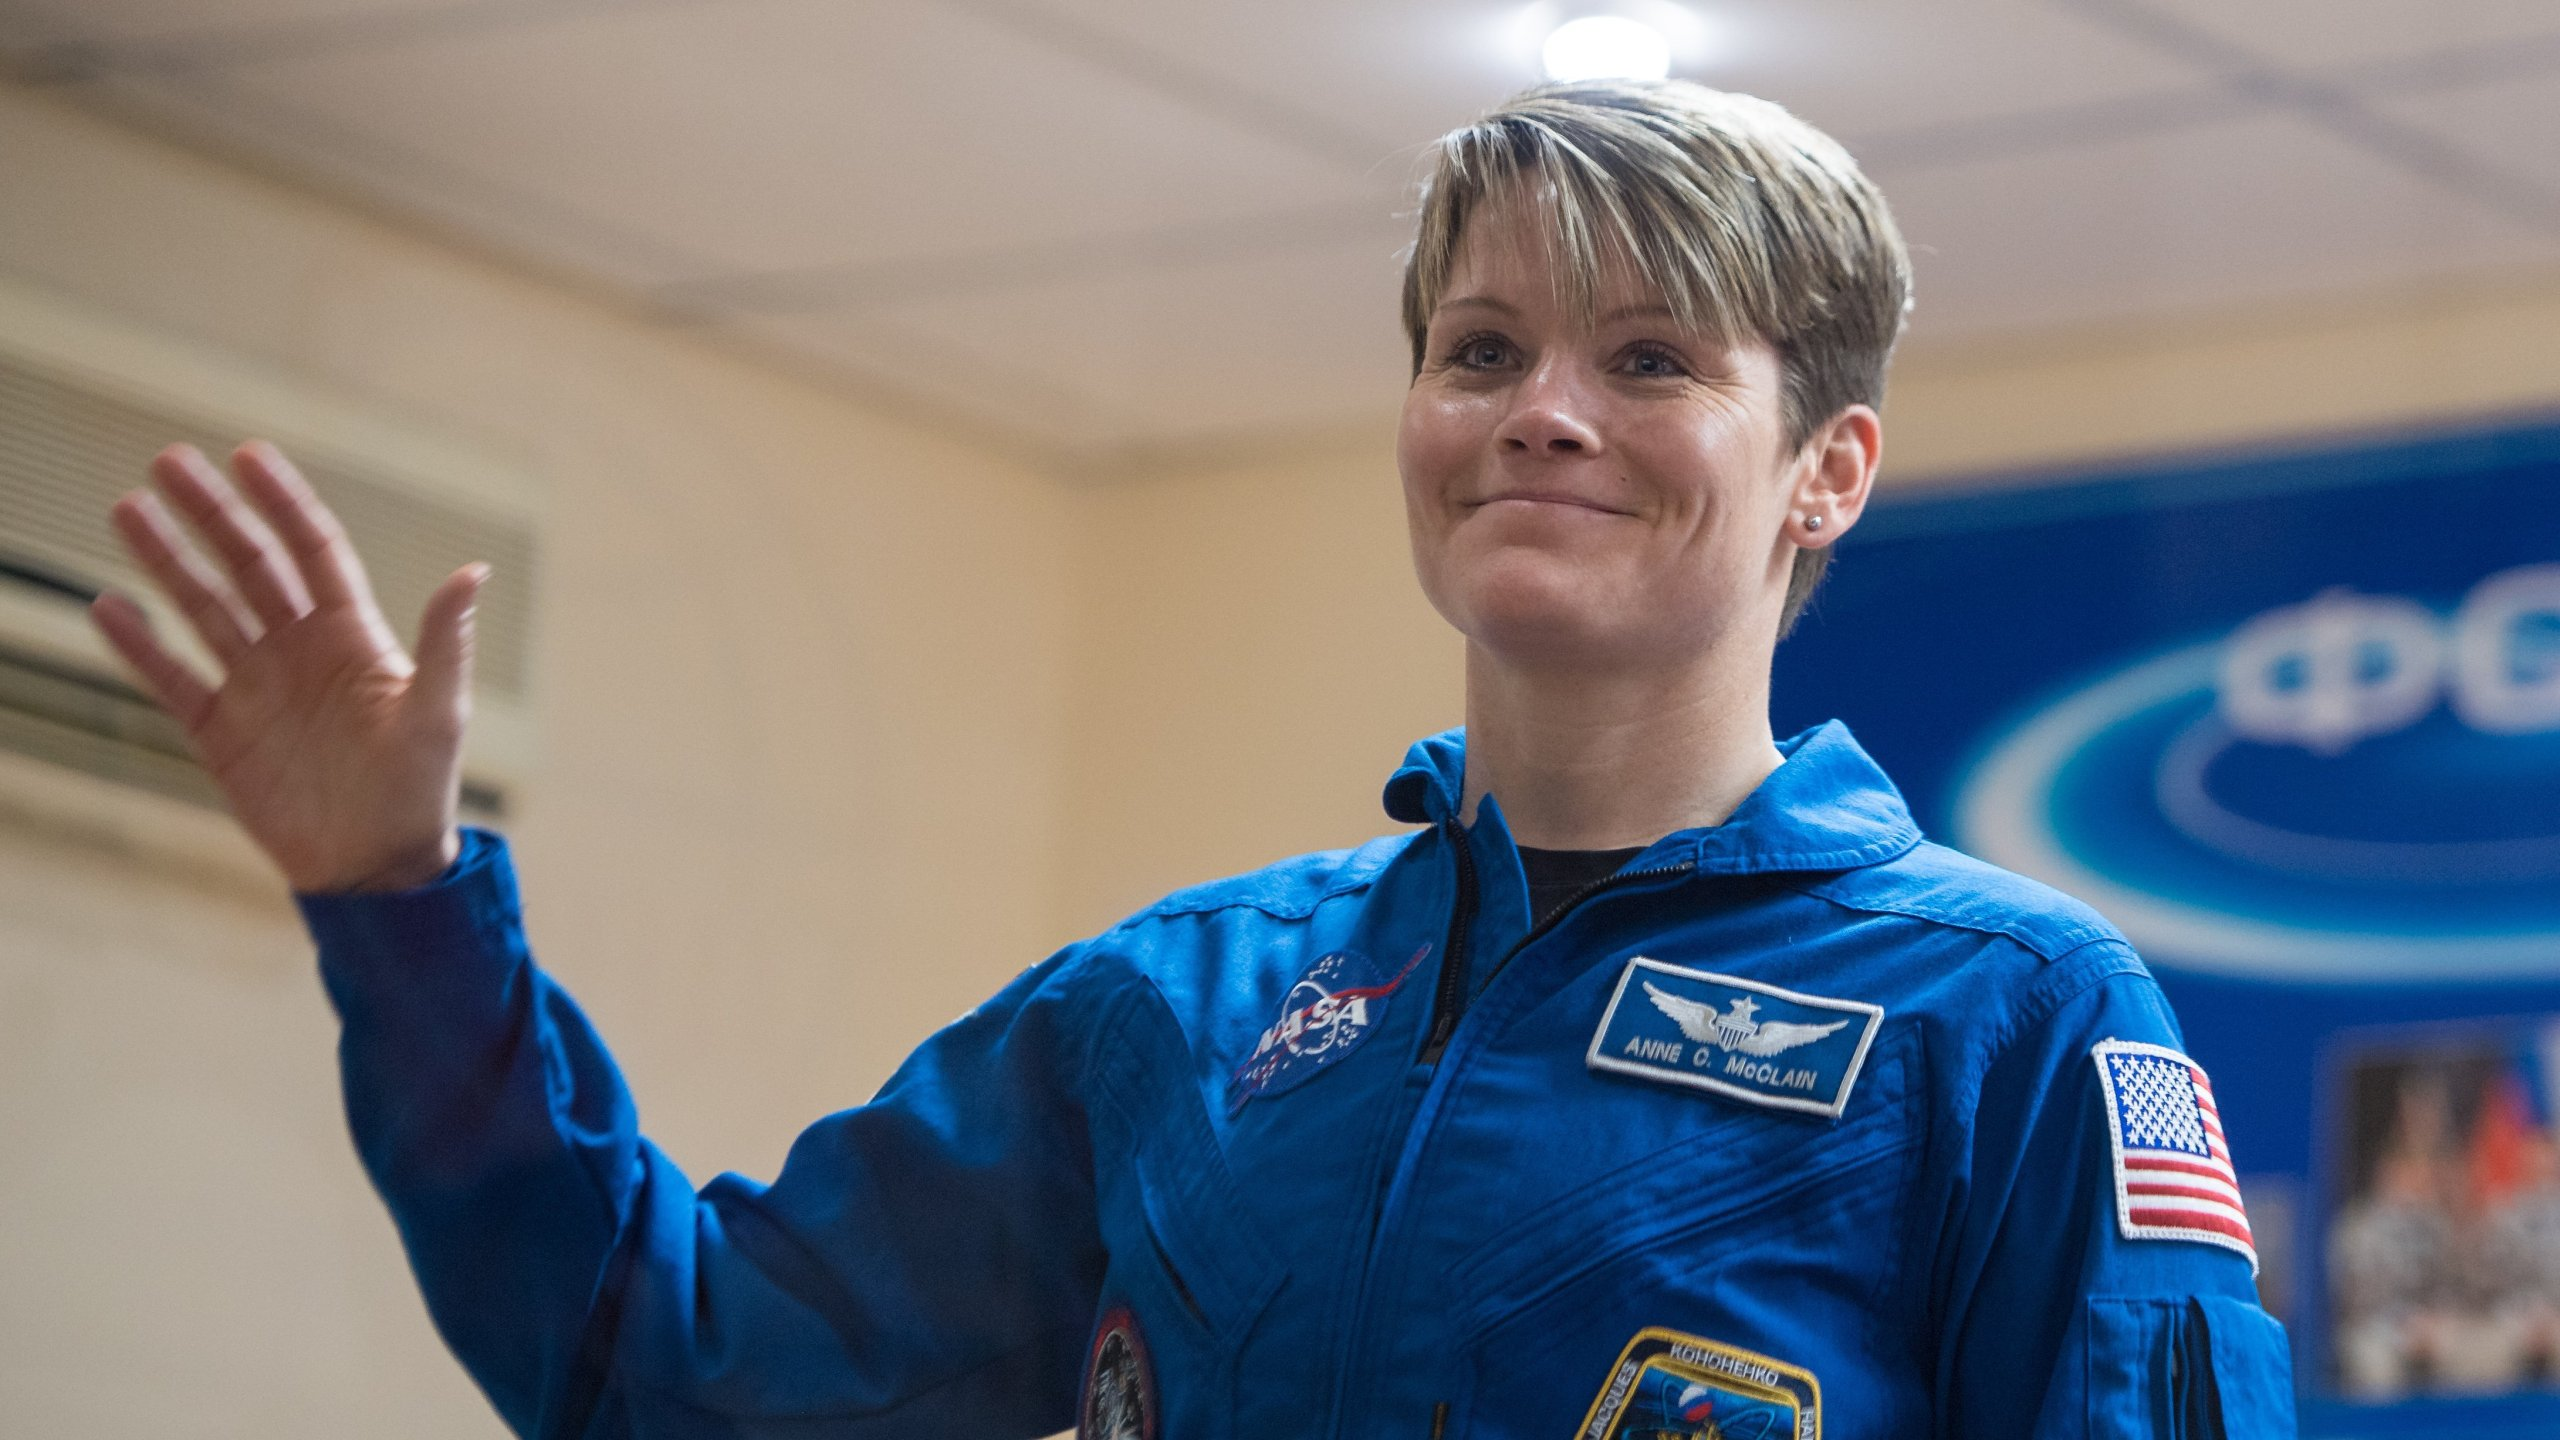 Prosecutors say Summer Worden lied to federal authorities when she told them her spouse, NASA astronaut Anne McClain, improperly accessed Worden's bank account twice in January 2019 while she was working on the International Space Station. (CNN)